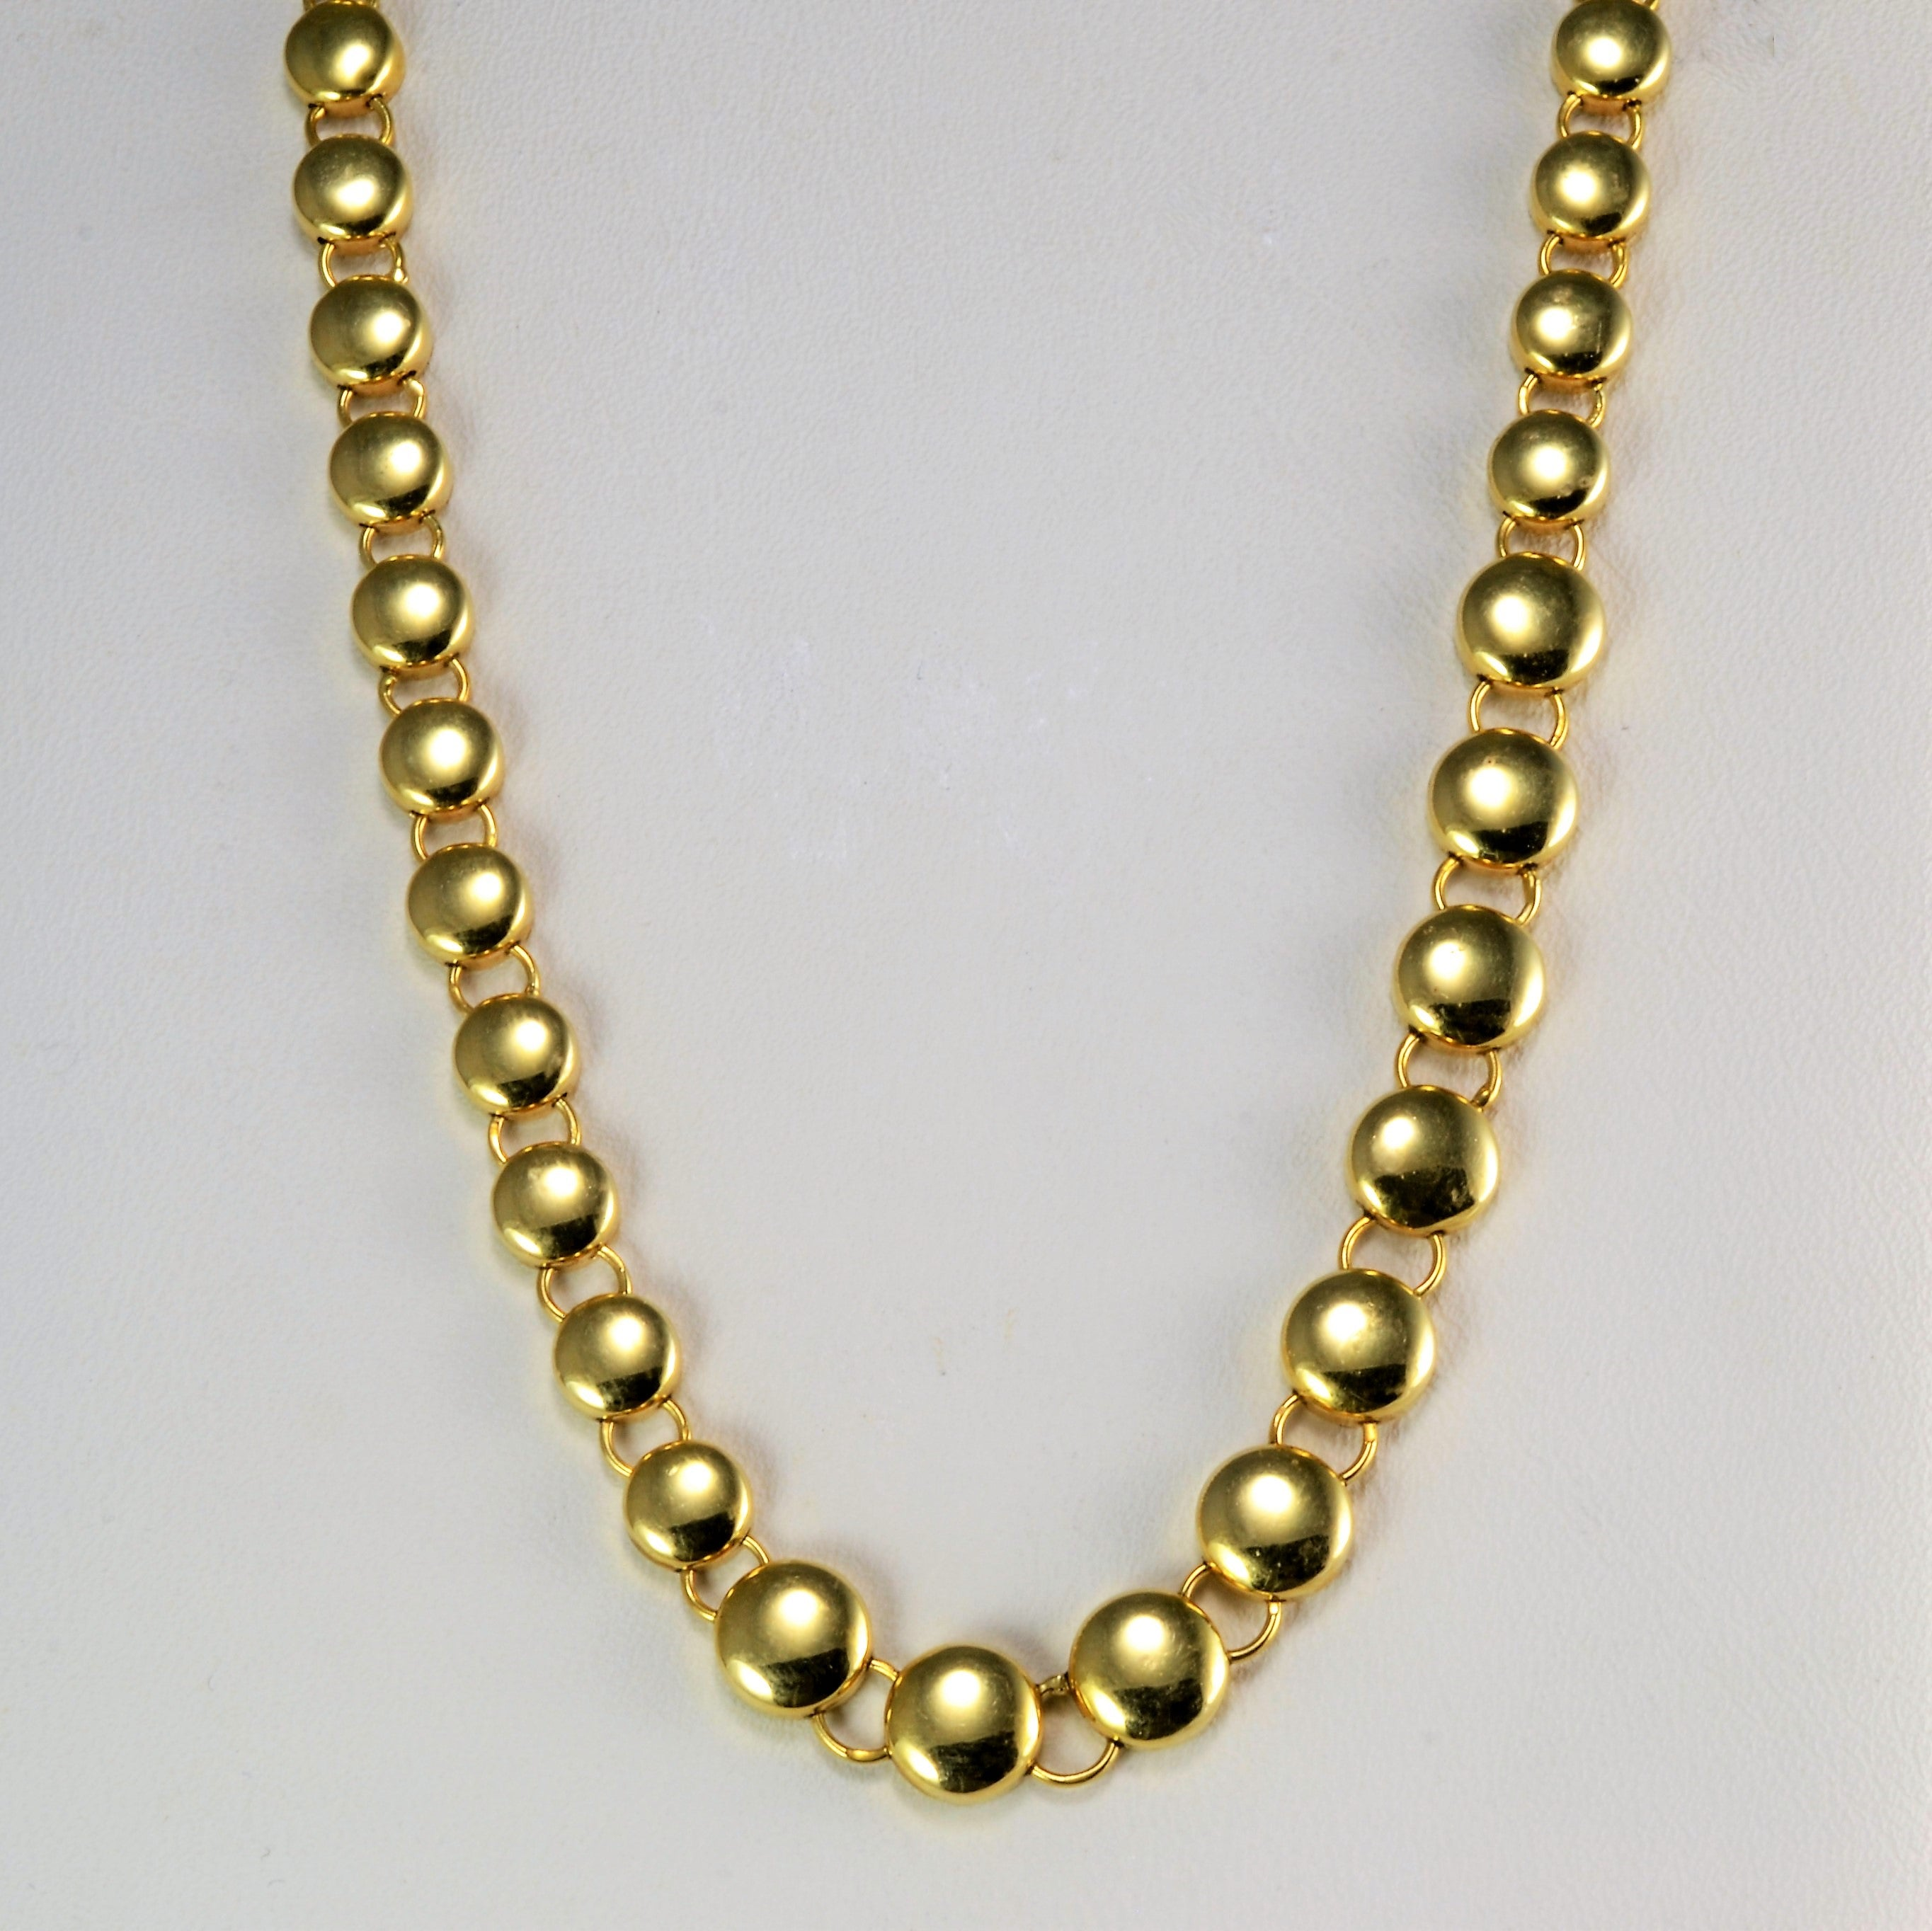 Textured Beaded Link Chain Necklace | 16''|